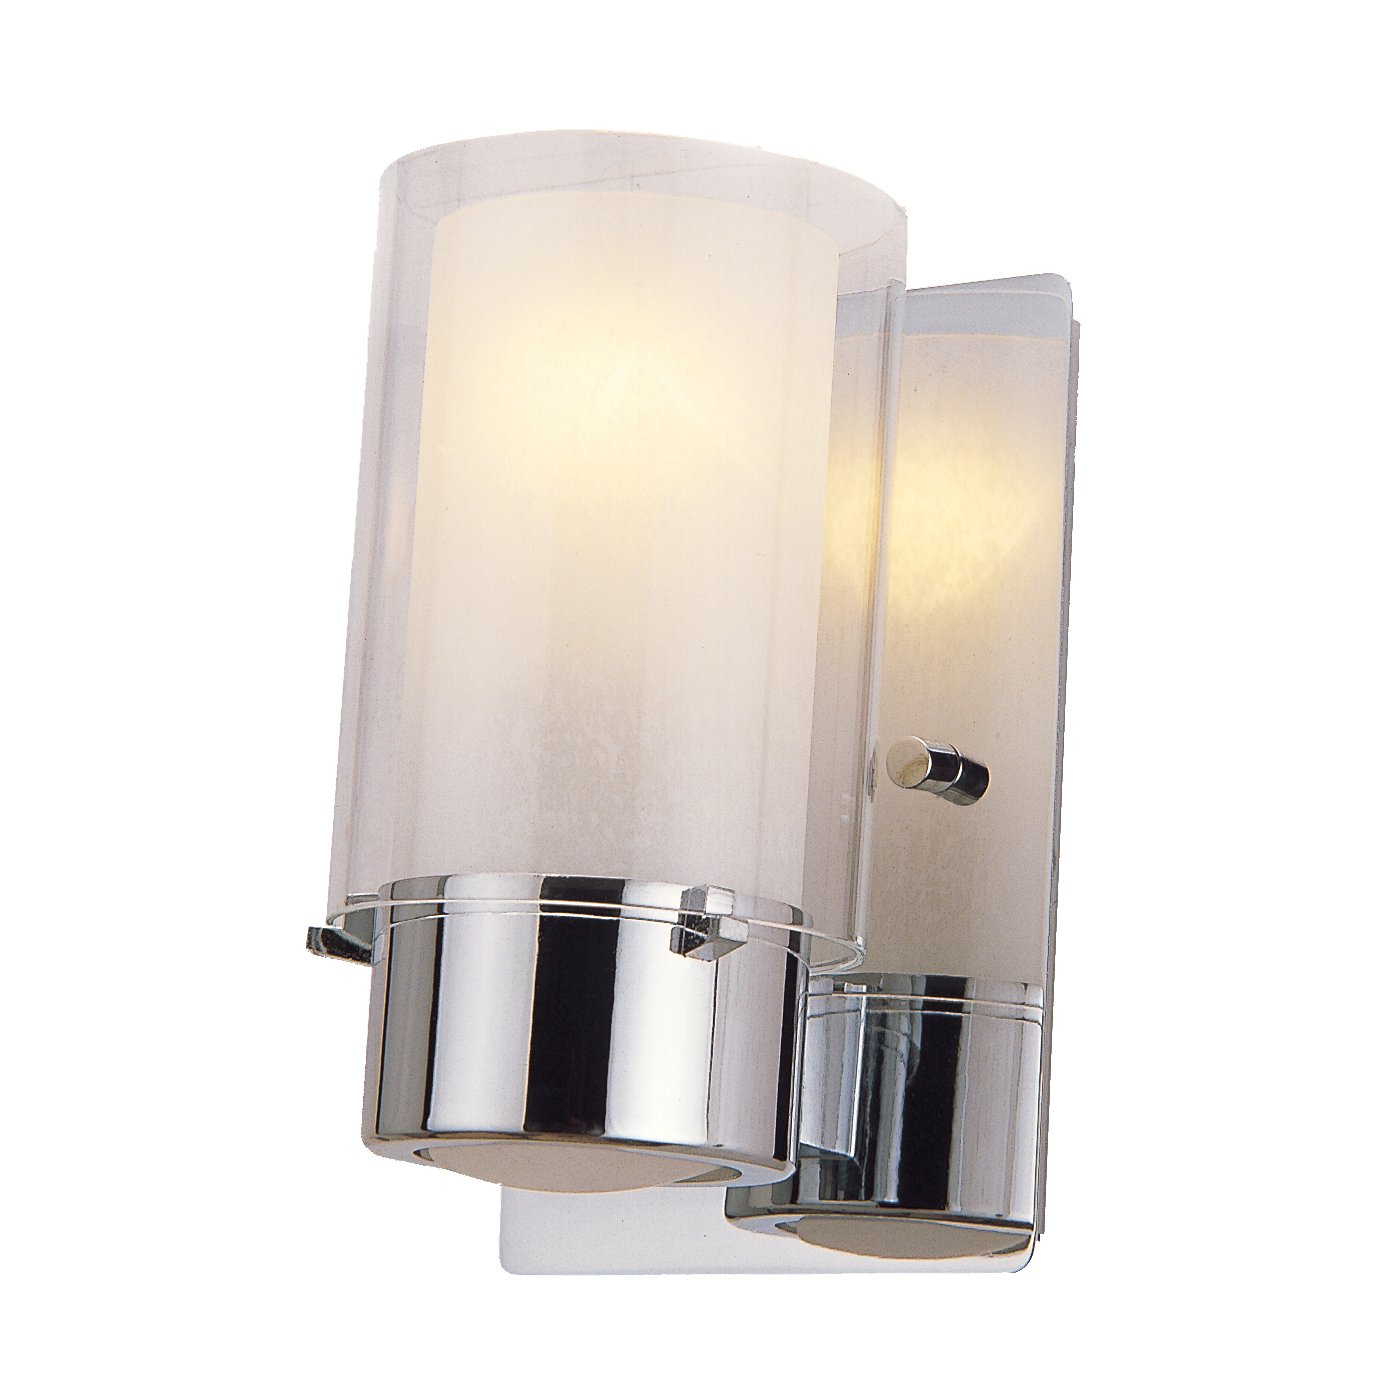 Bathroom Wall Sconces With Outlet 10 facts to know about wall lights with outlet | warisan lighting